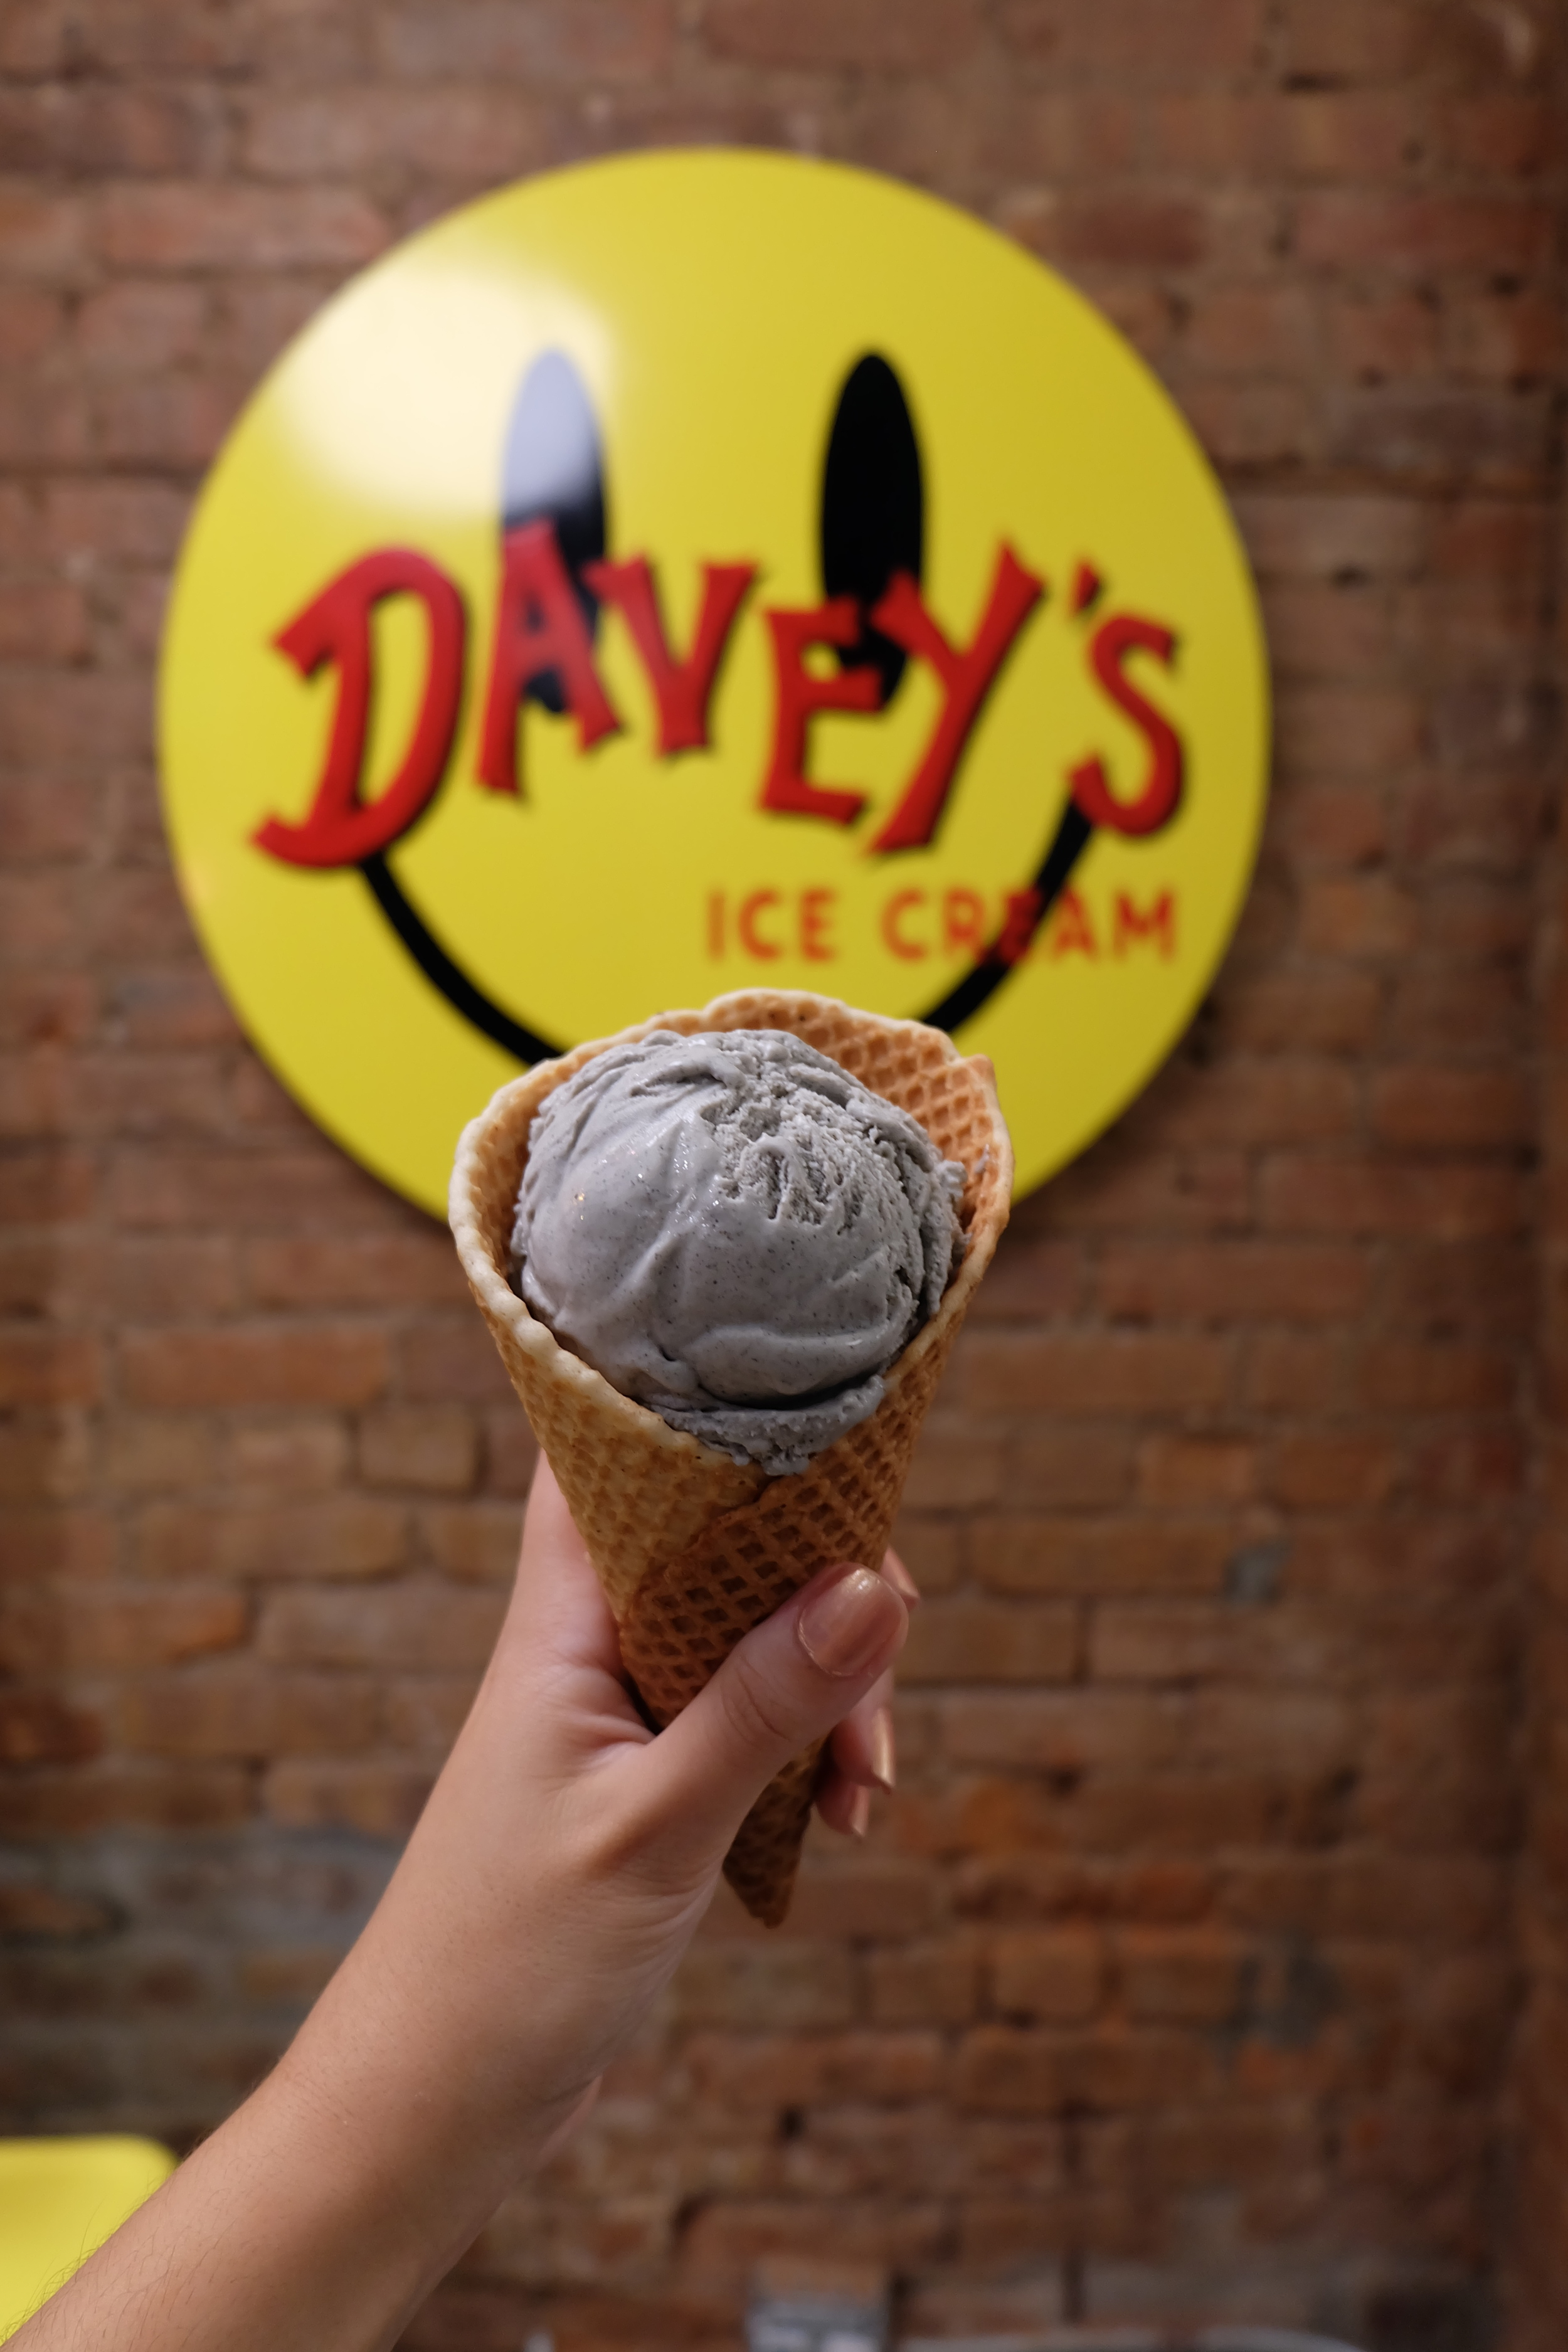 2. Davey's Ice Cream: Davey rang me up at the cash register and when I complimented him on his ice cream tattoo, he shushed me as I I asked,